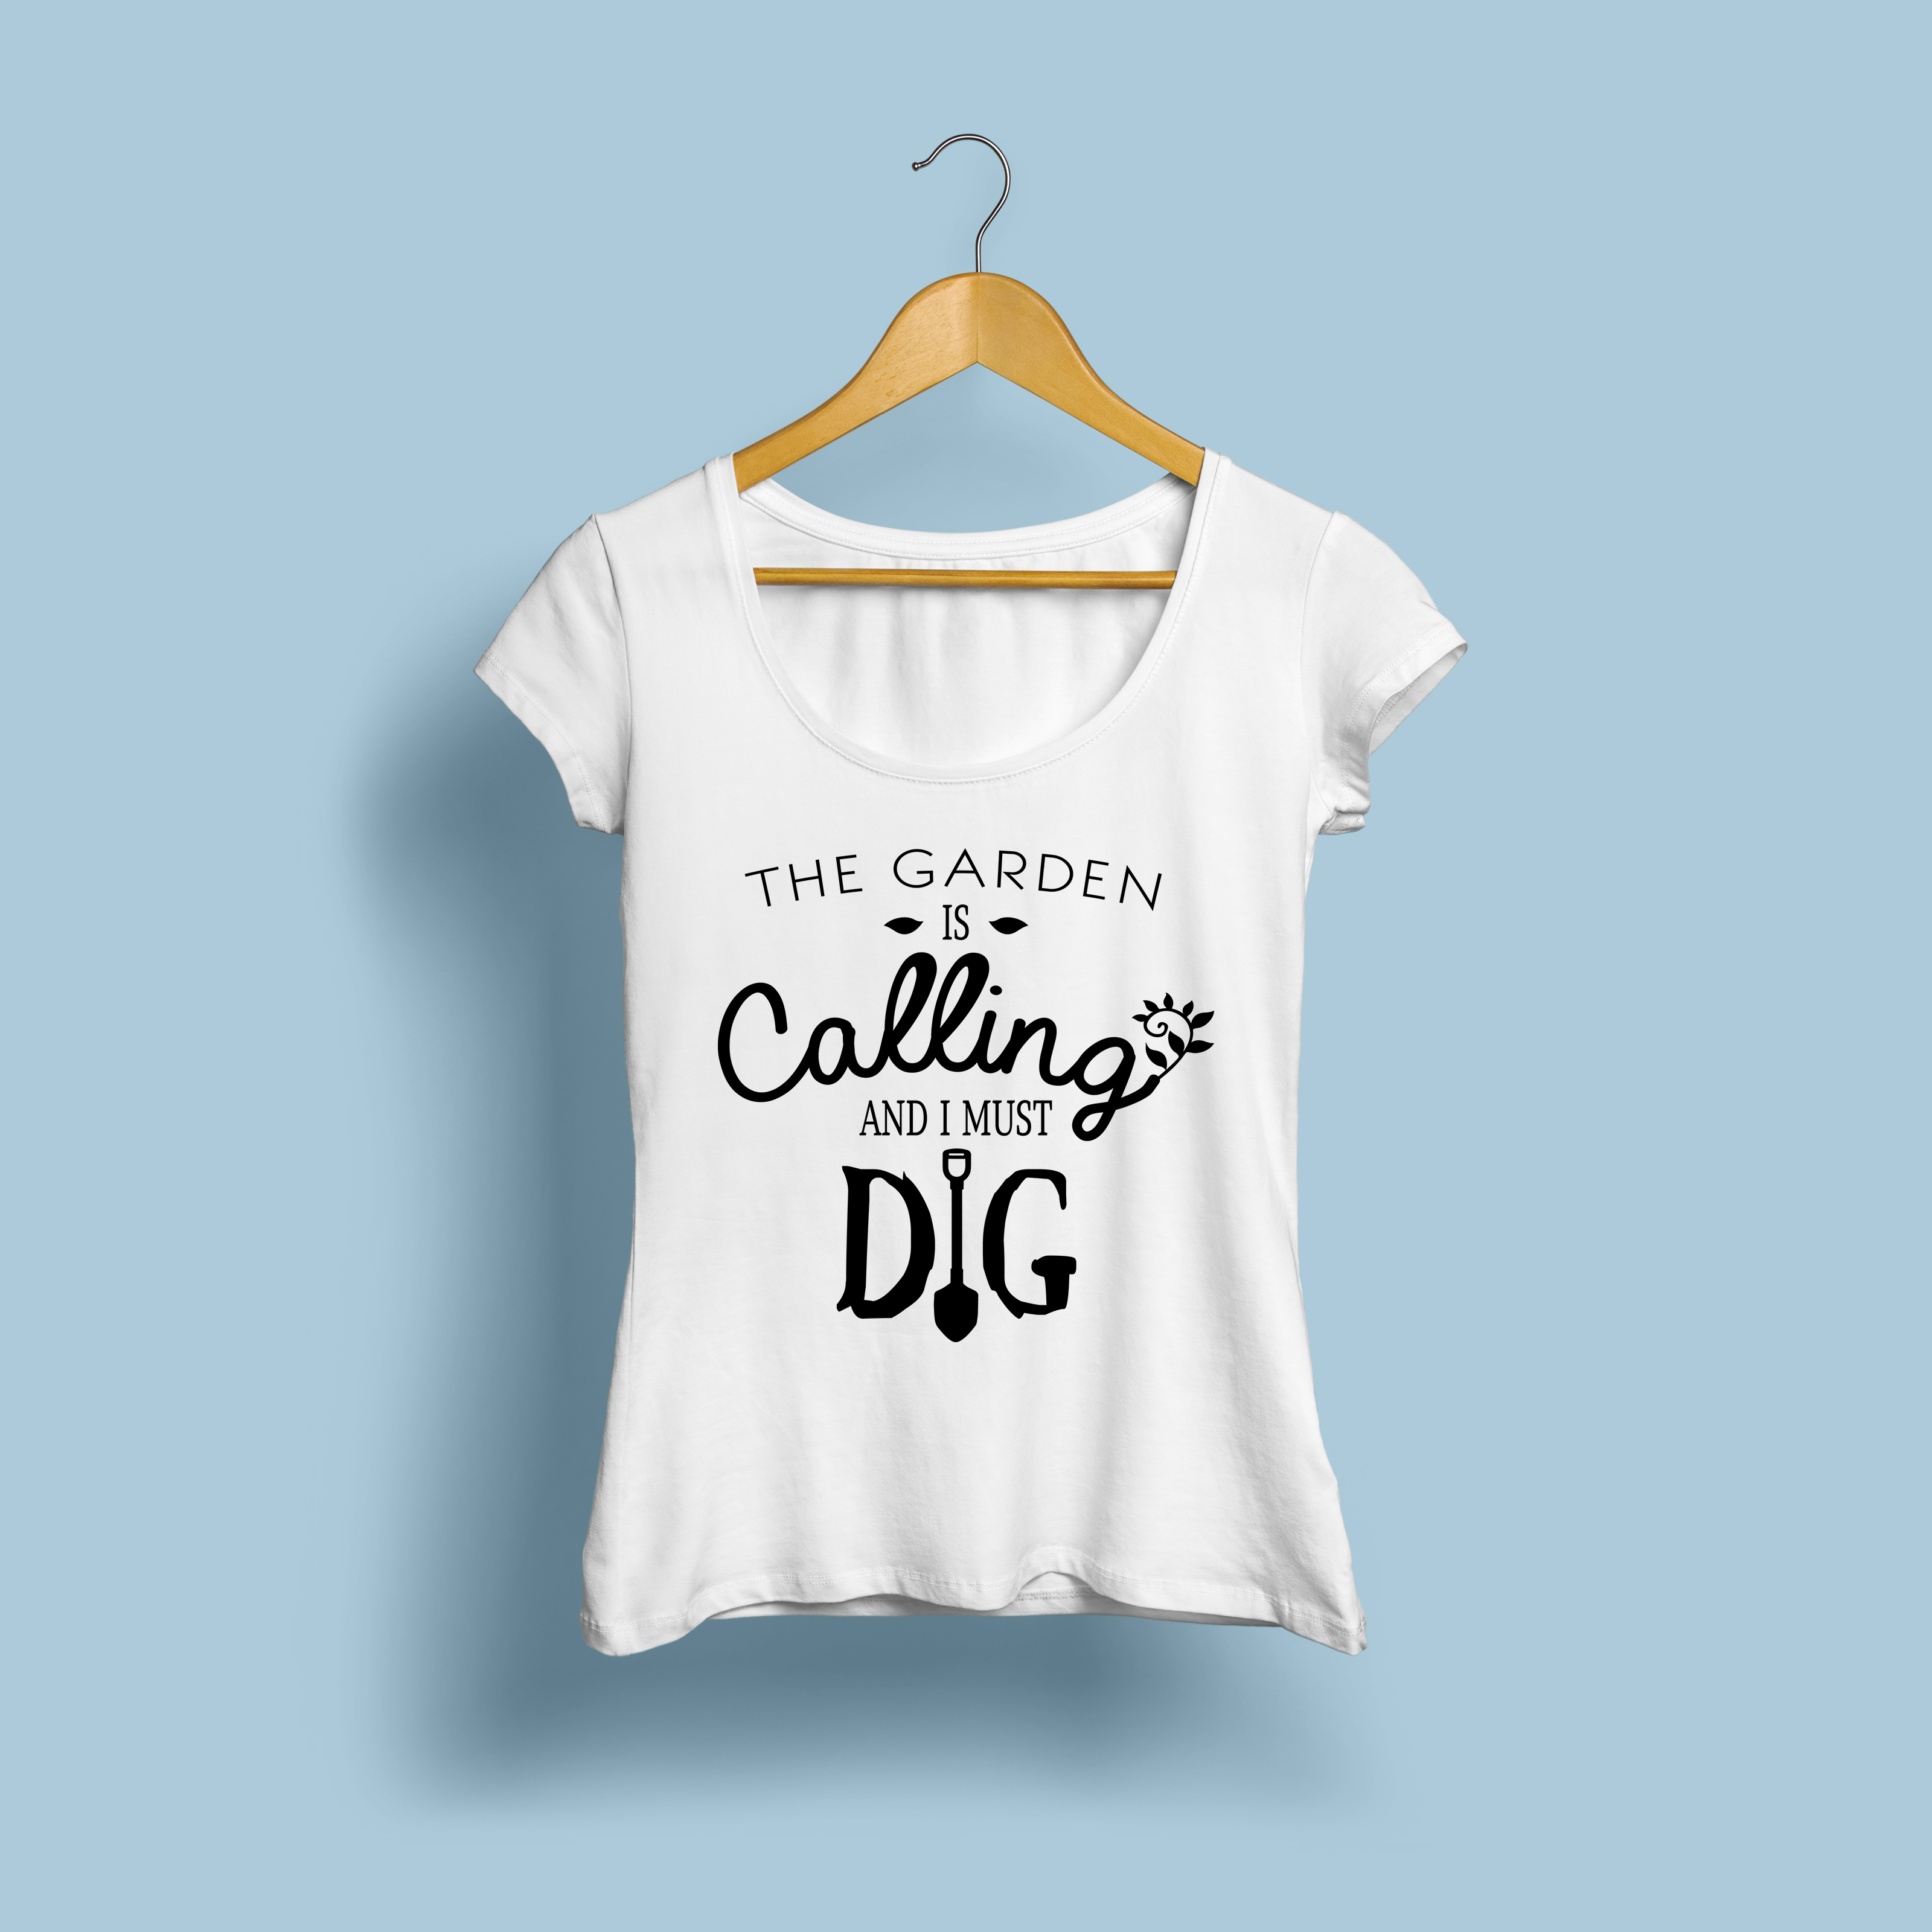 The Garden Is Calling and I Must Dig | Cut File SVG | PNG example image 3